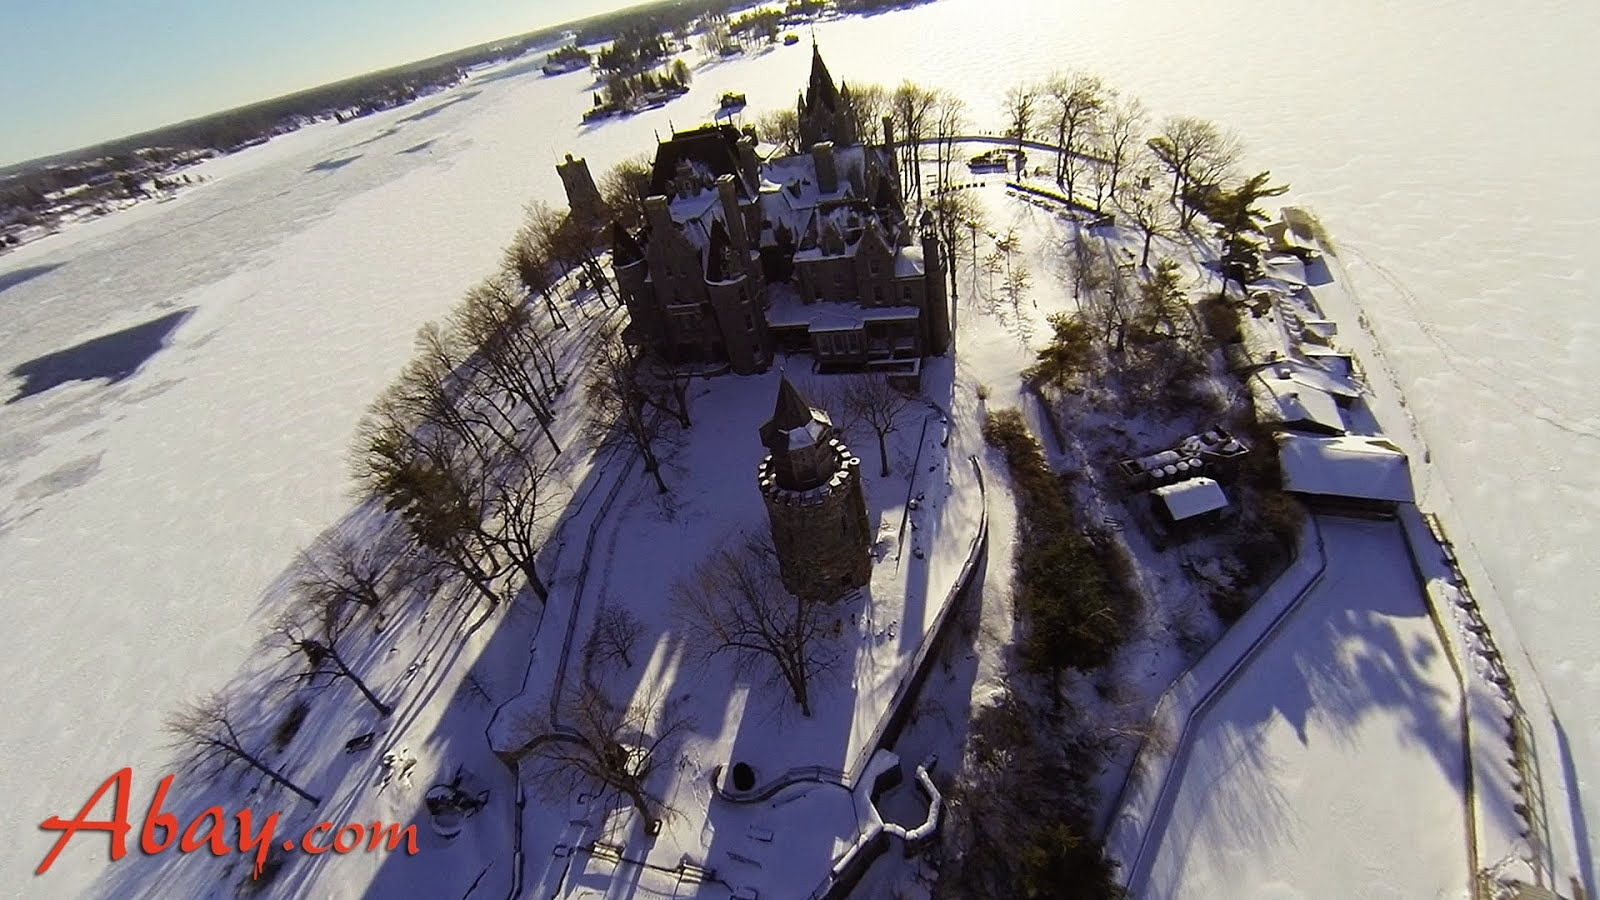 Boldt Castle in Winter from 1000IslandsOne Drone